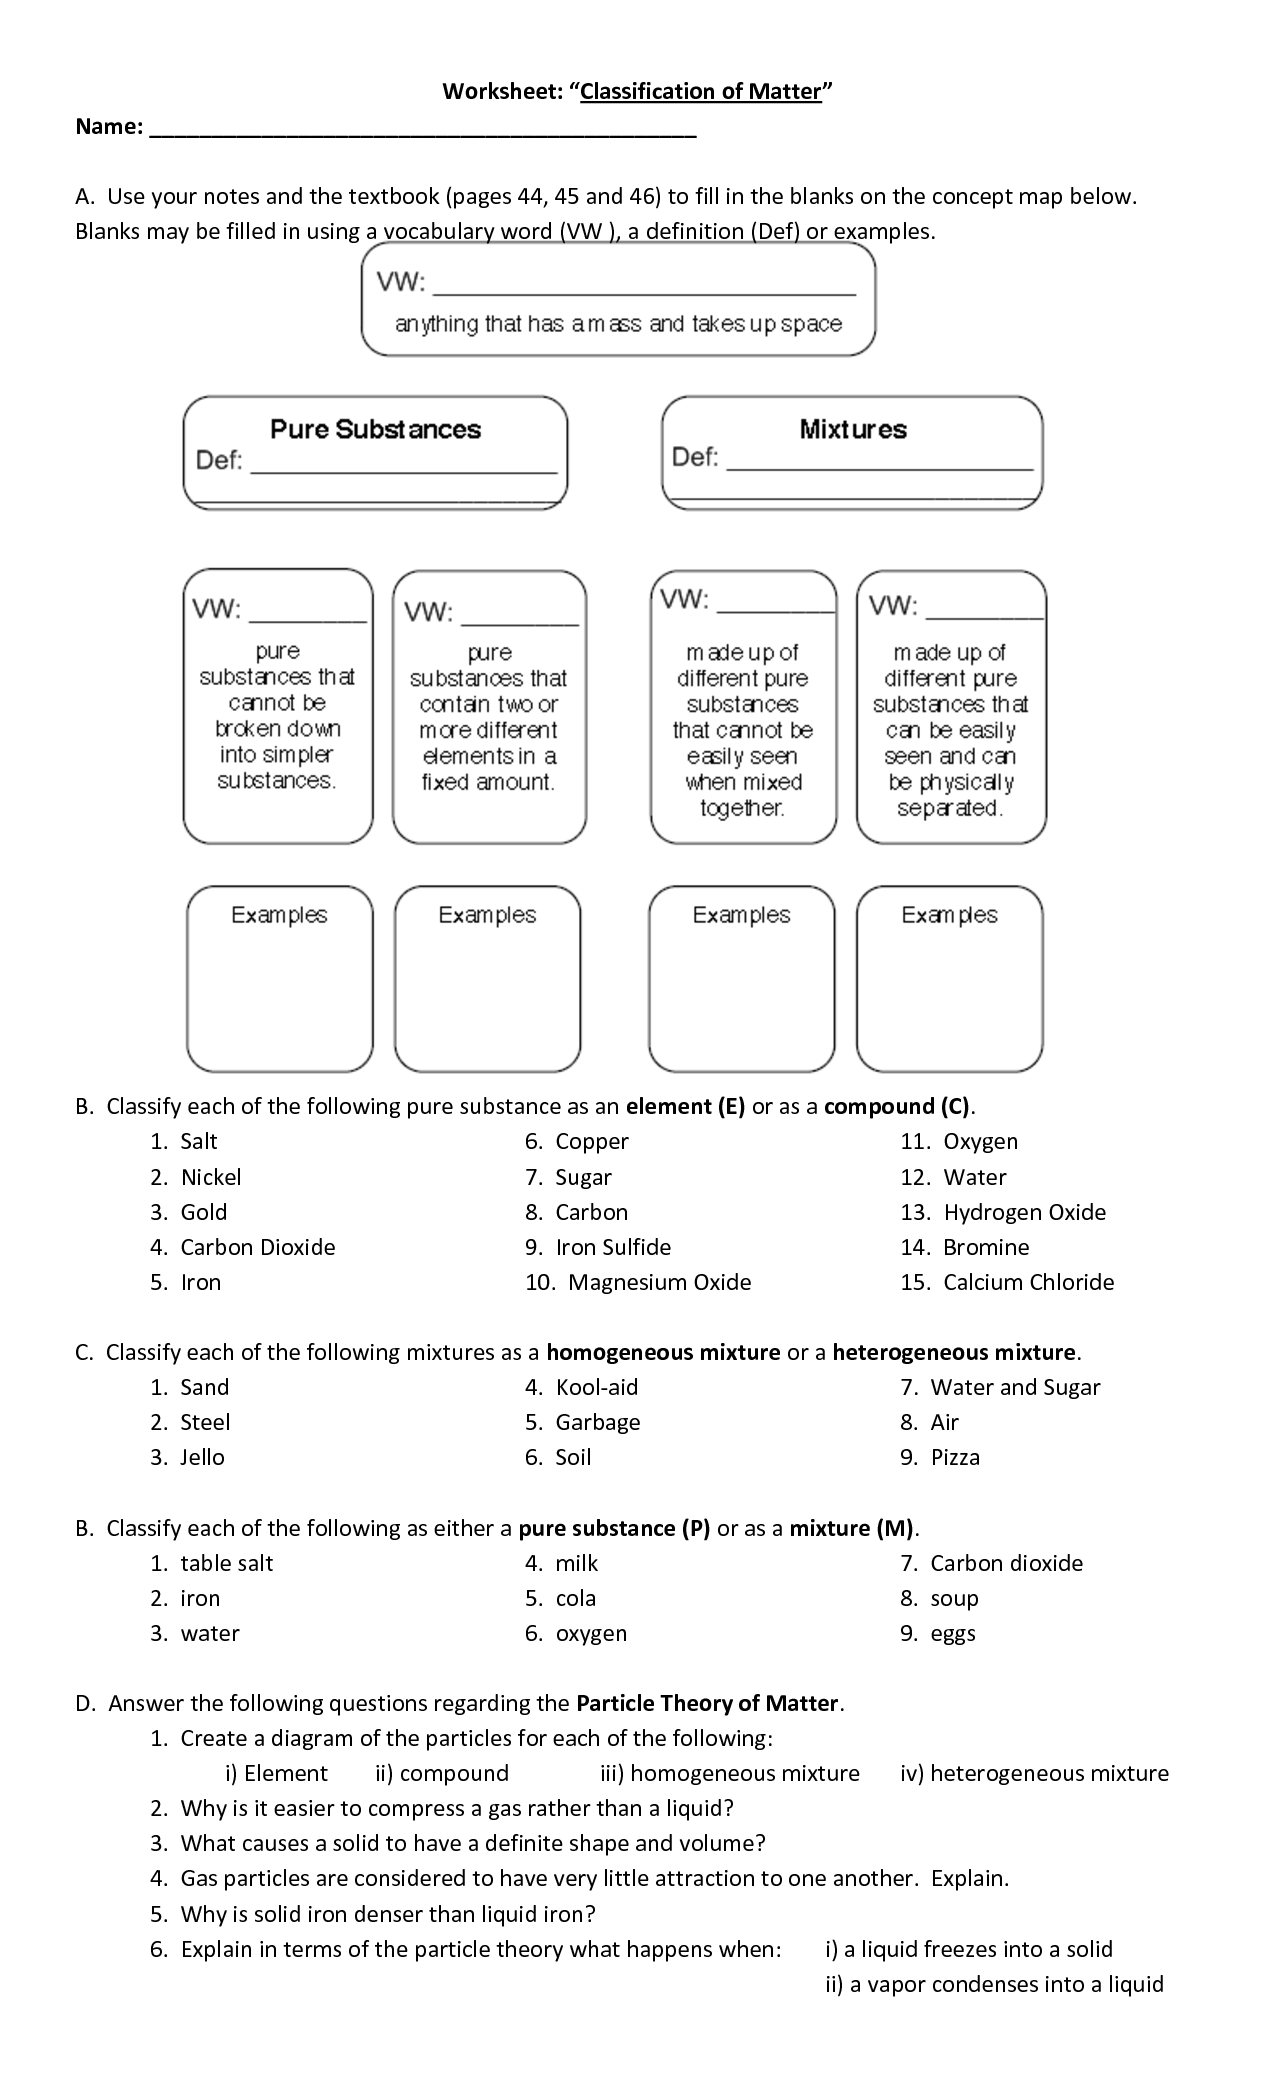 16 Best Images of Classifying Matter Worksheet Classifying ...